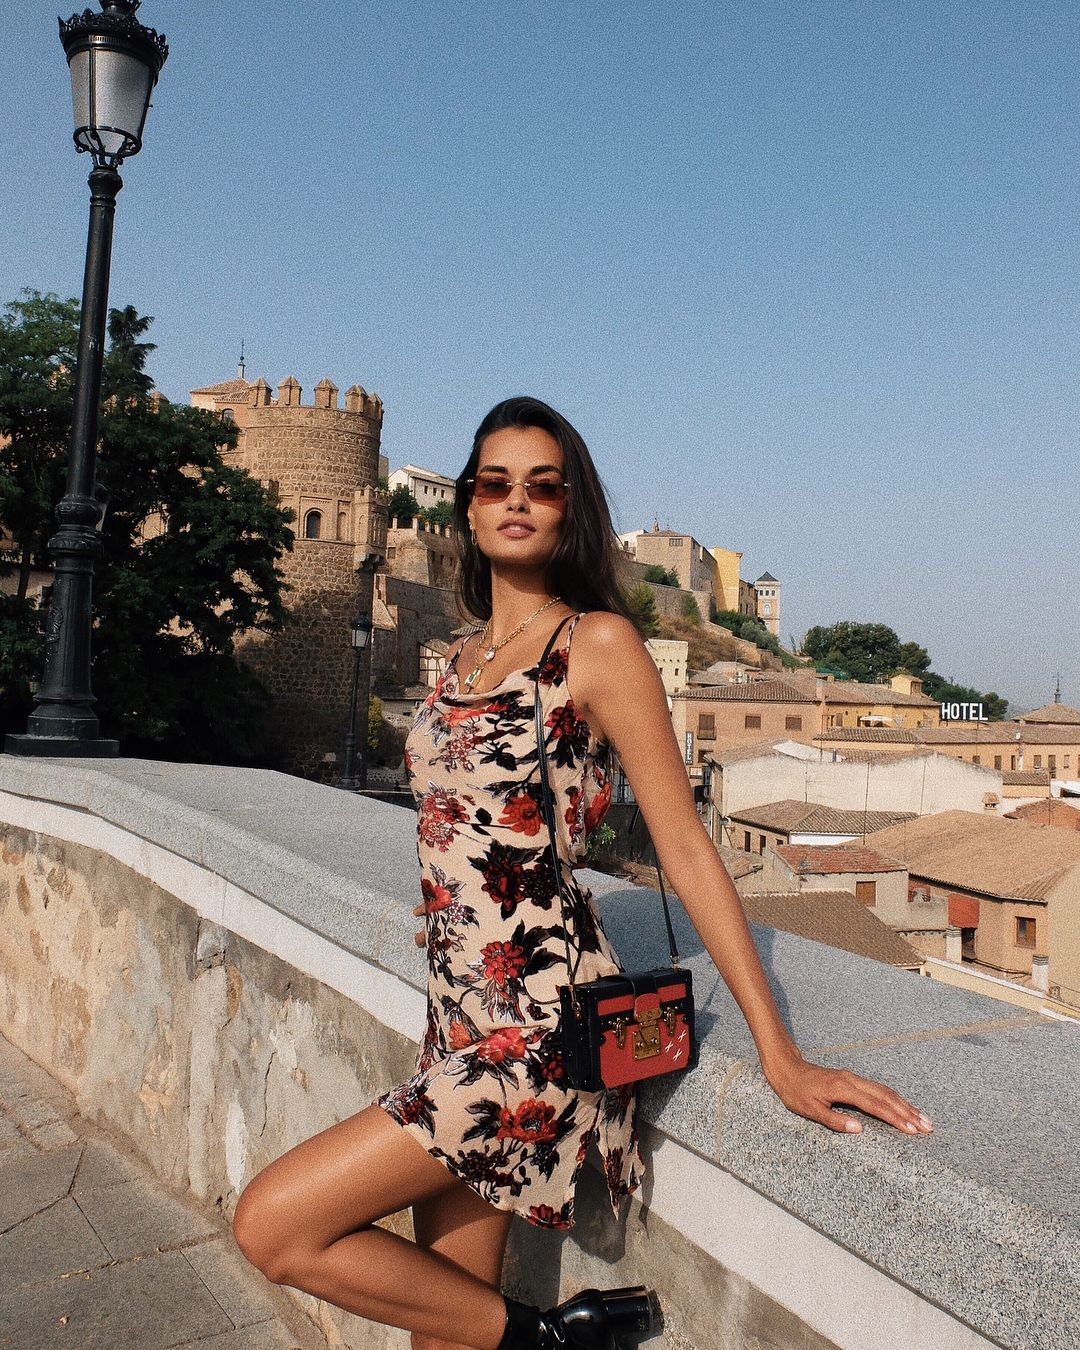 "Victoria Secret Espagne Malaga gizele oliveira on instagram: ""a day in toledo ?? #toledo"